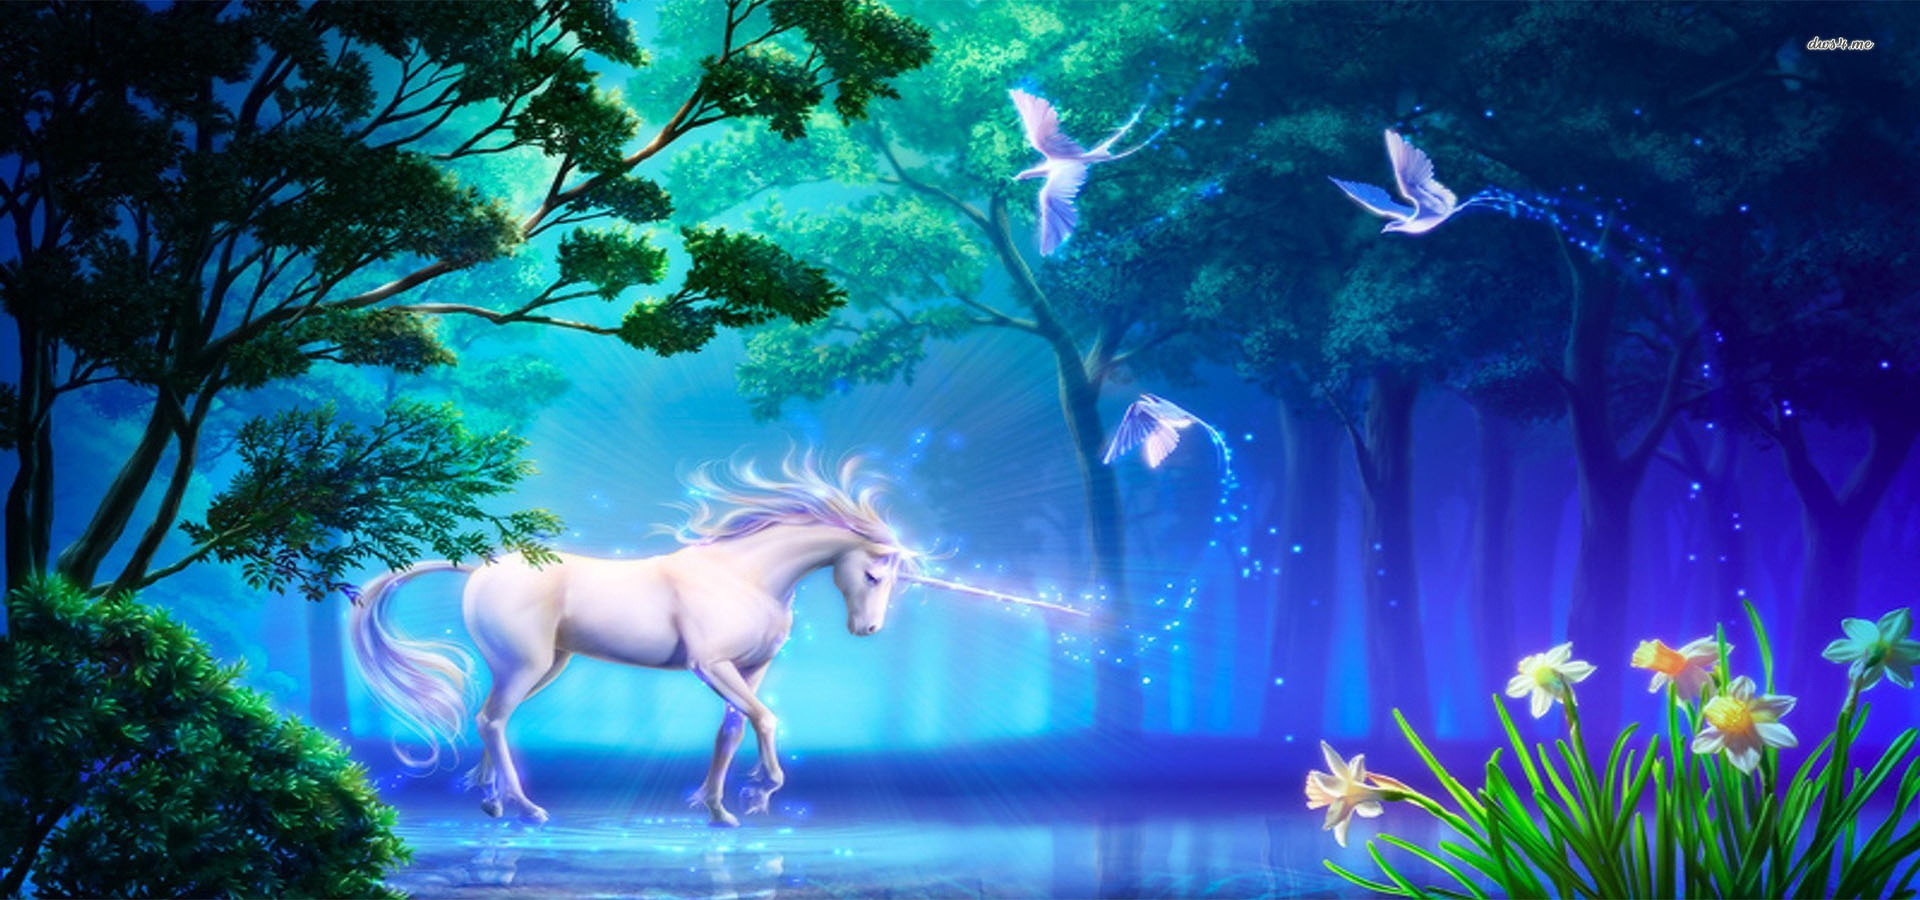 Tinkerbell Fall Wallpaper Dream Cartoon Unicorn Dream Cartoon Unicorn Background